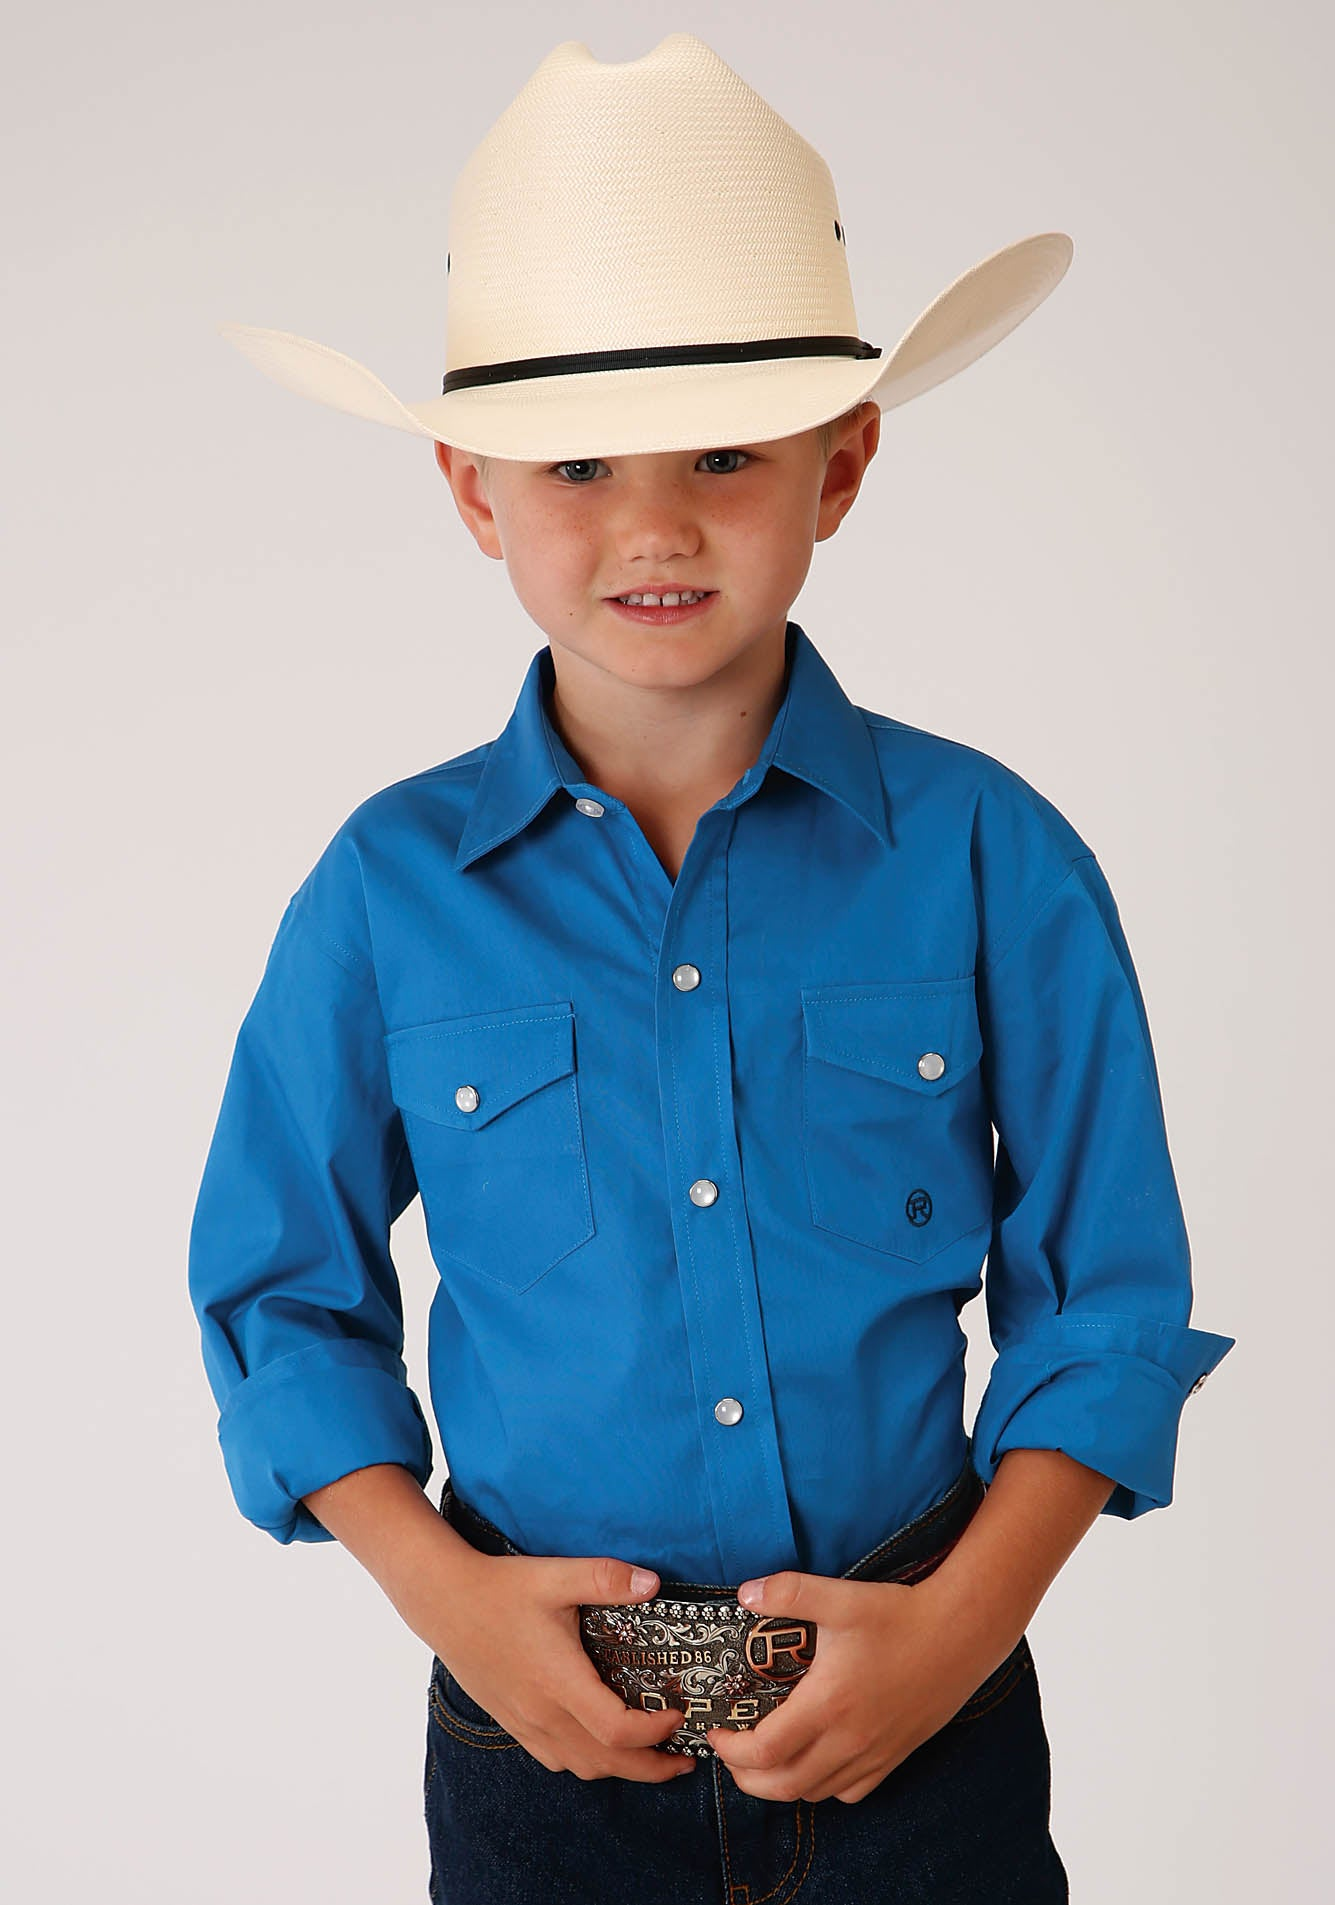 ROPER BOYS BLUE 00227 SOLID POPLIN - ROYAL BOY'S AMARILLO COLLECTION - BLUE RIDGE LONG SLEEVE